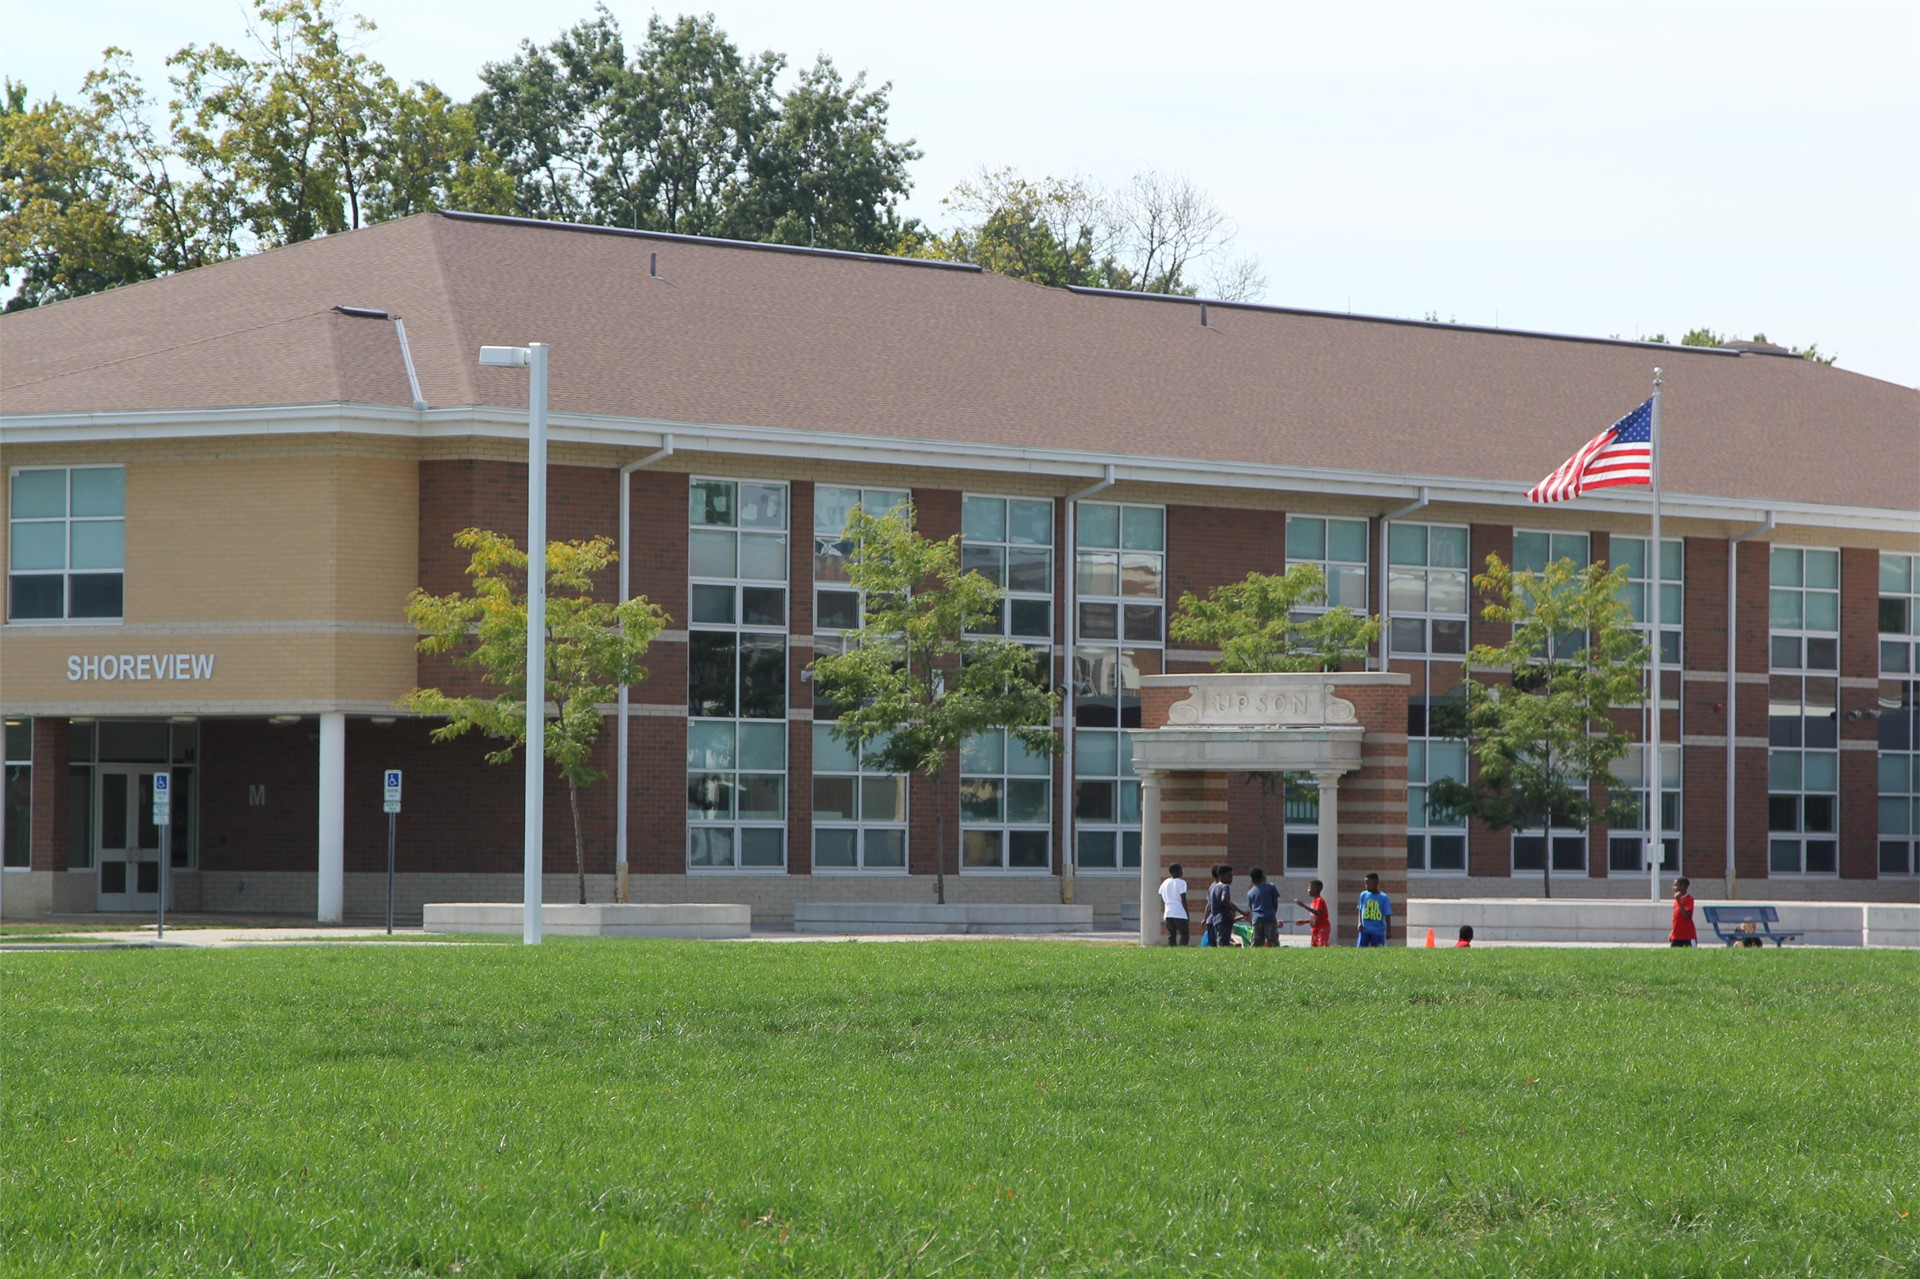 Shoreview Elementary School building view